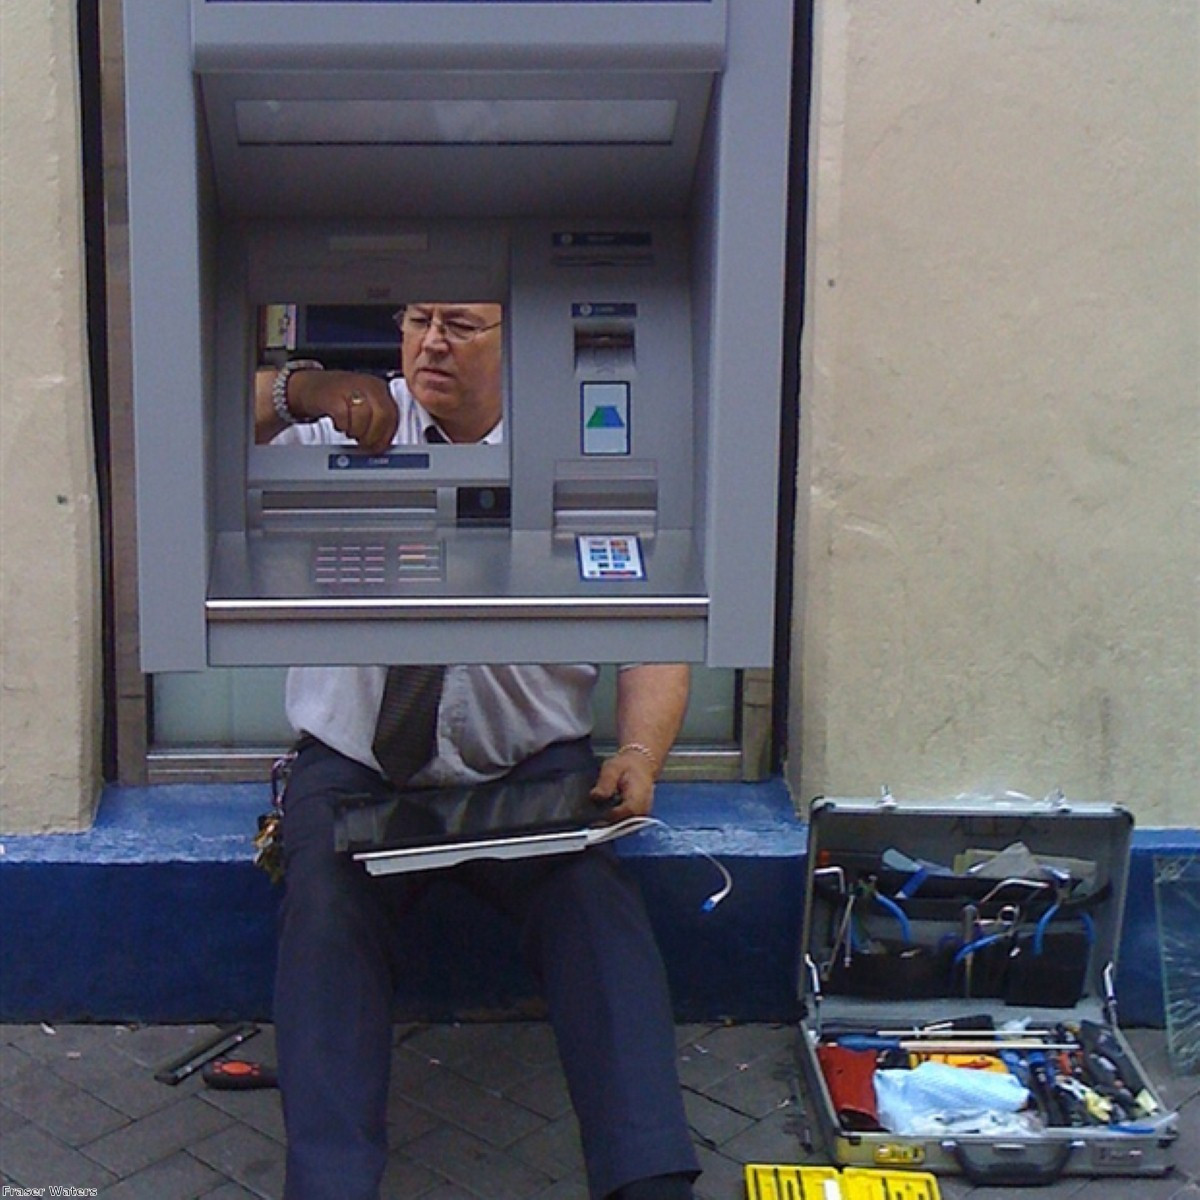 A man fixes a cash machine on a British street. Government sources admit the minimum wage could be cut, but analysts warn of effects on demand.